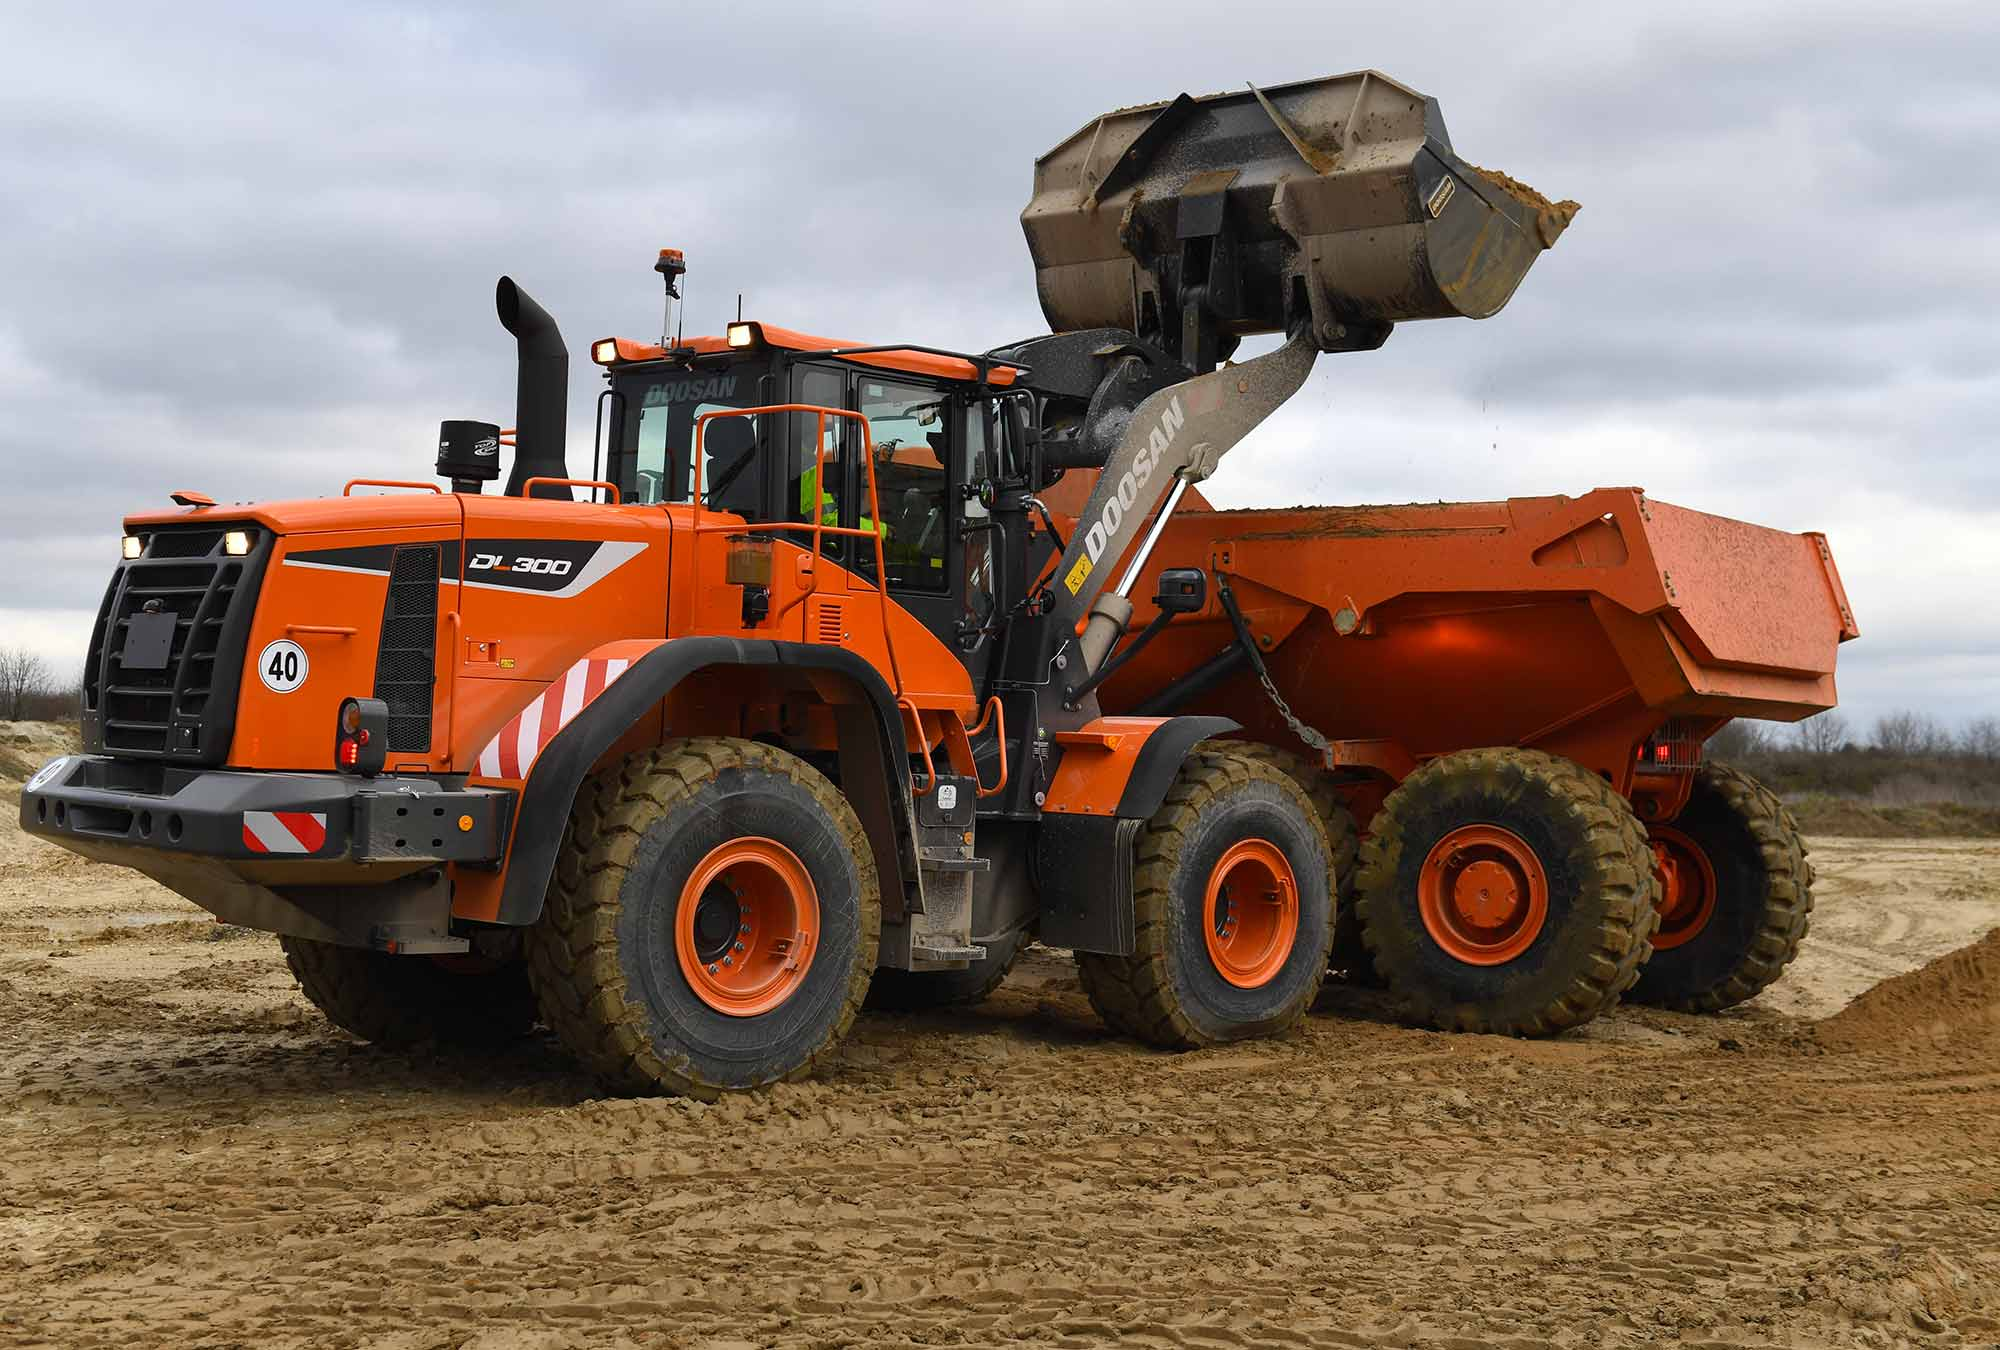 DL300-5 | Doosan Infracore Europe